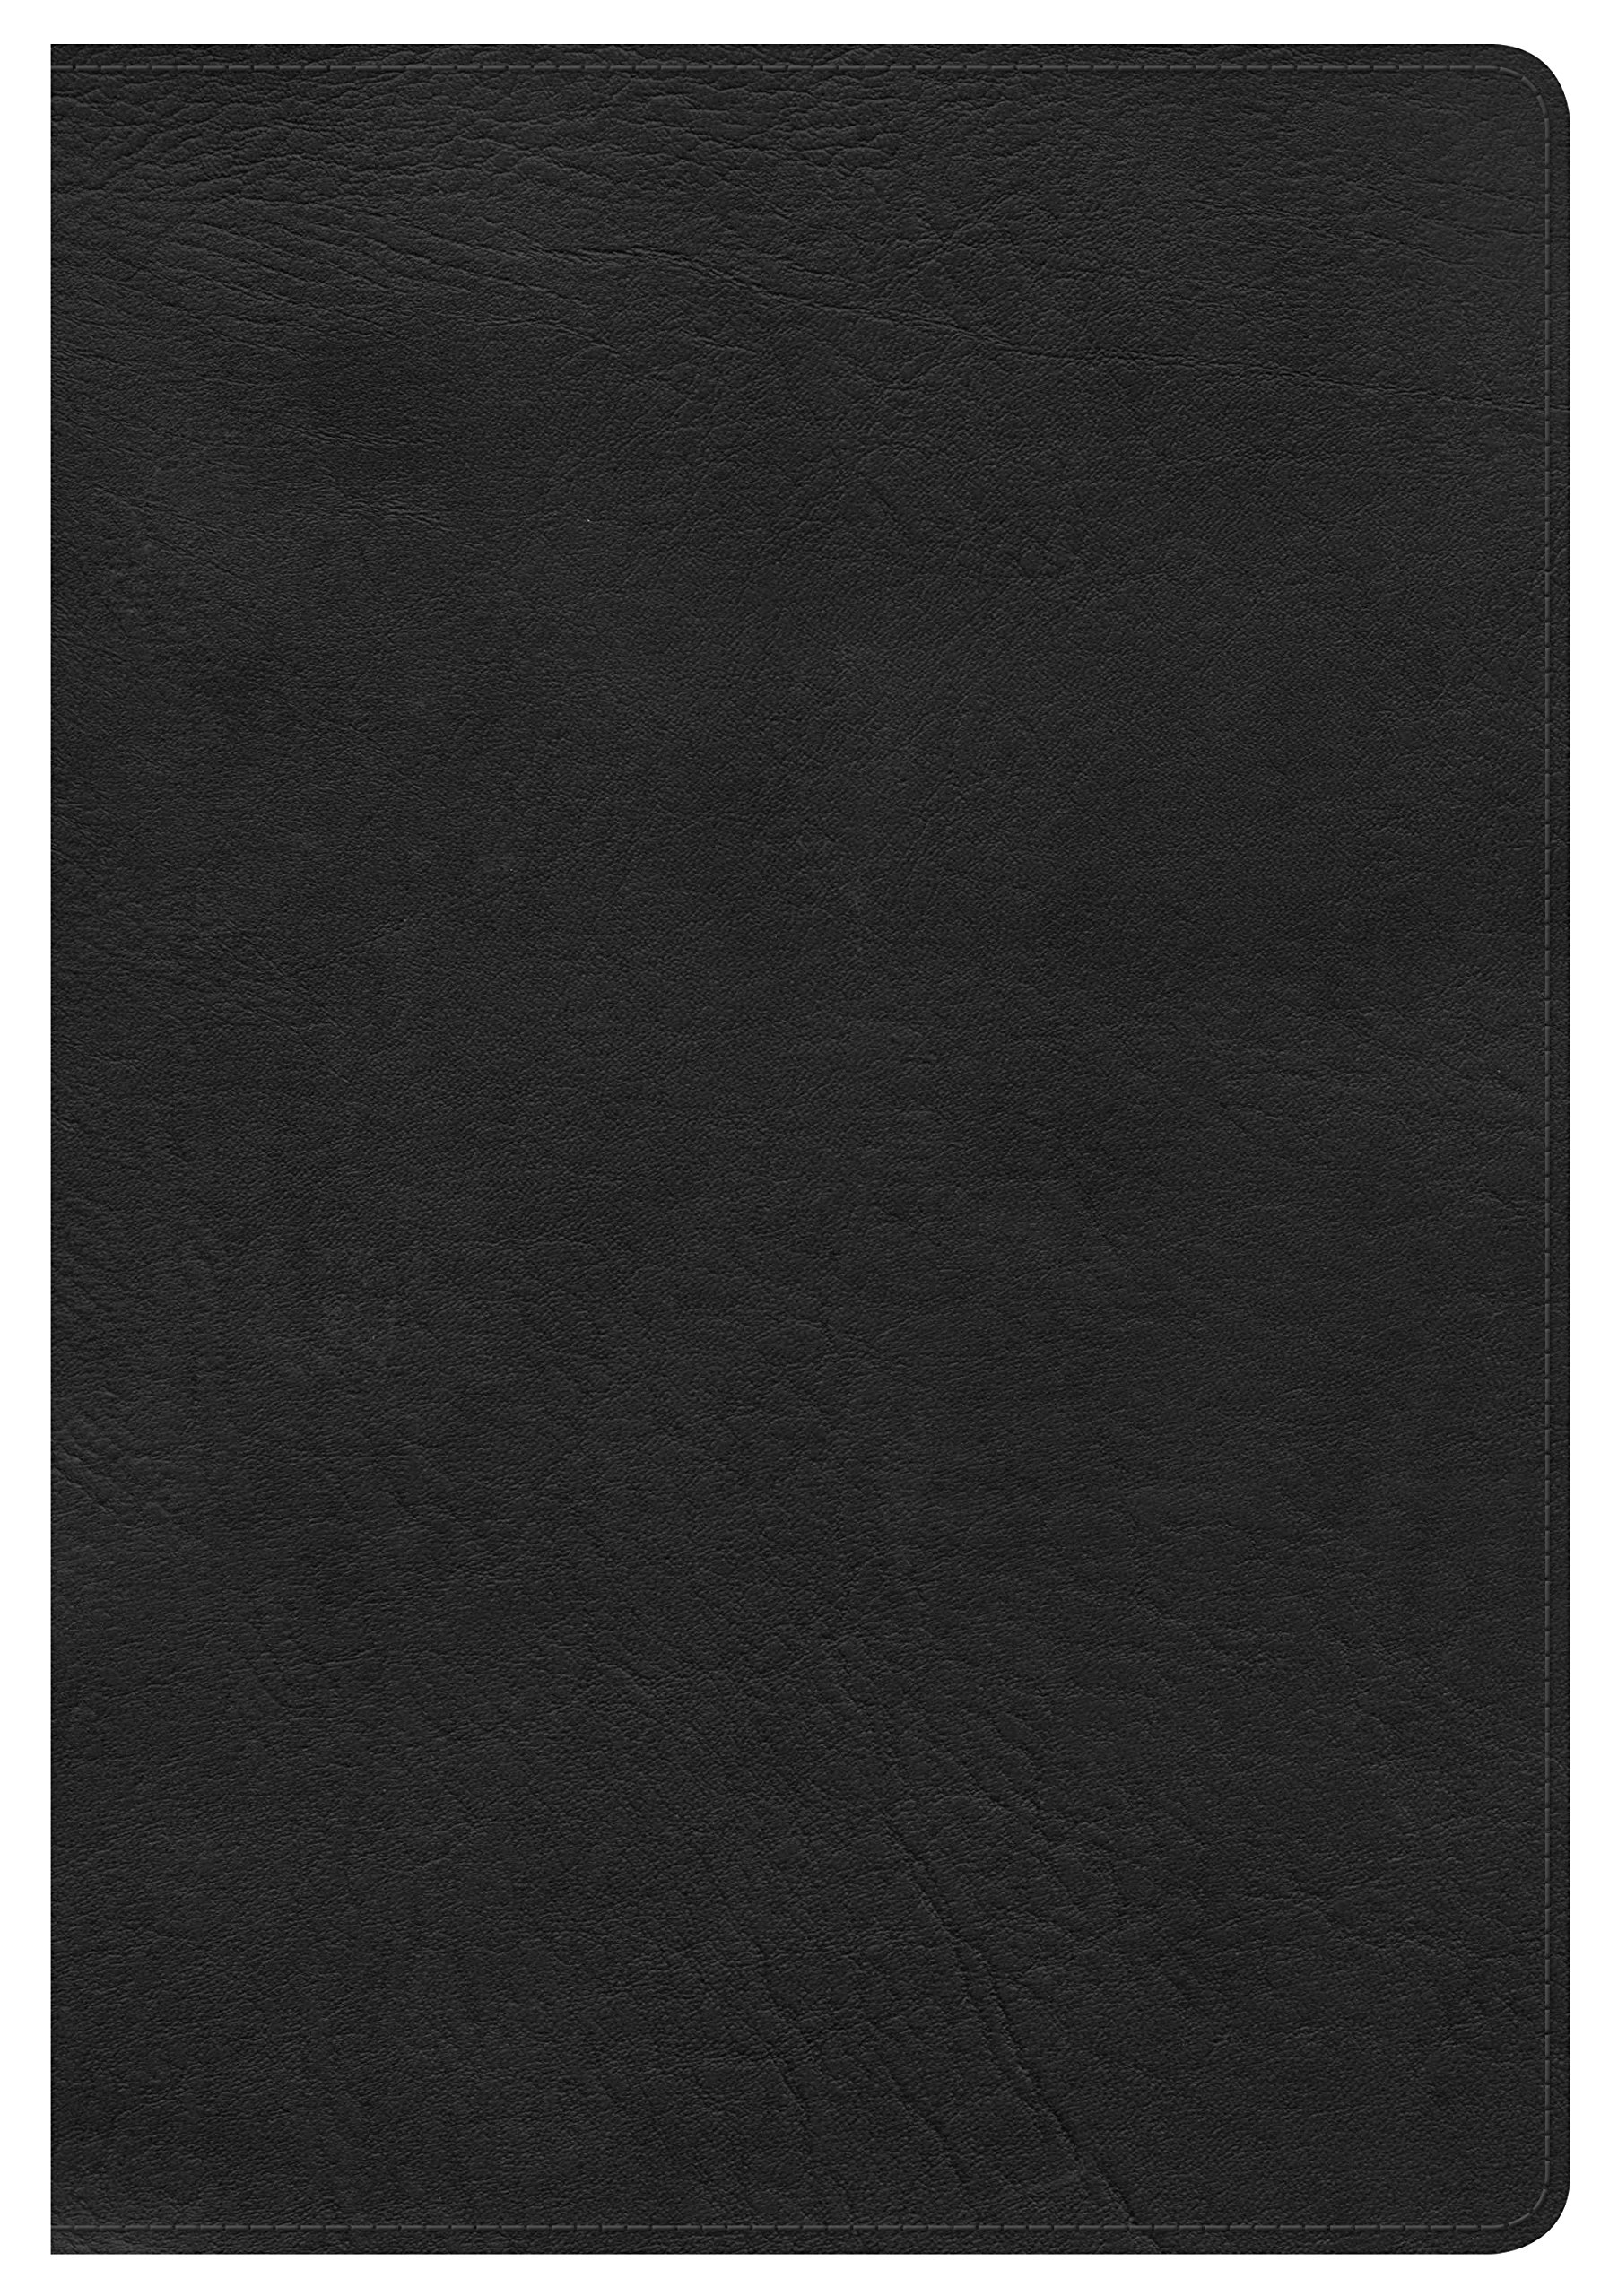 Download KJV Giant Print Reference Bible, Black LeatherTouch, Indexed pdf epub